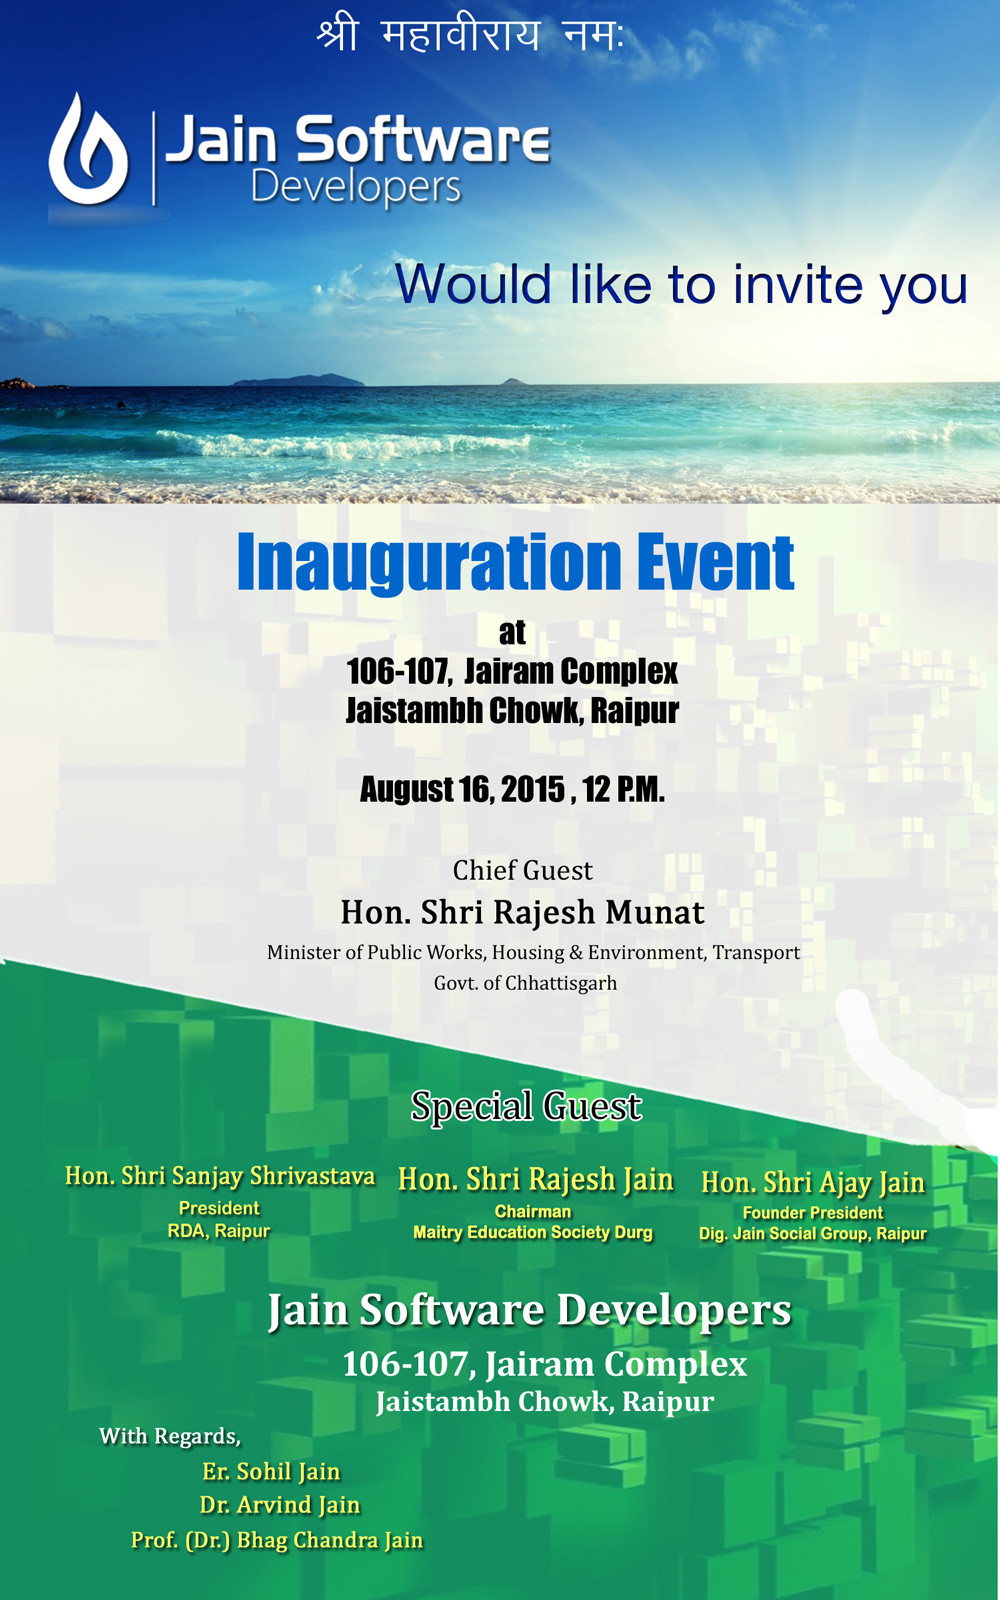 Jain Software Developer Inauguration